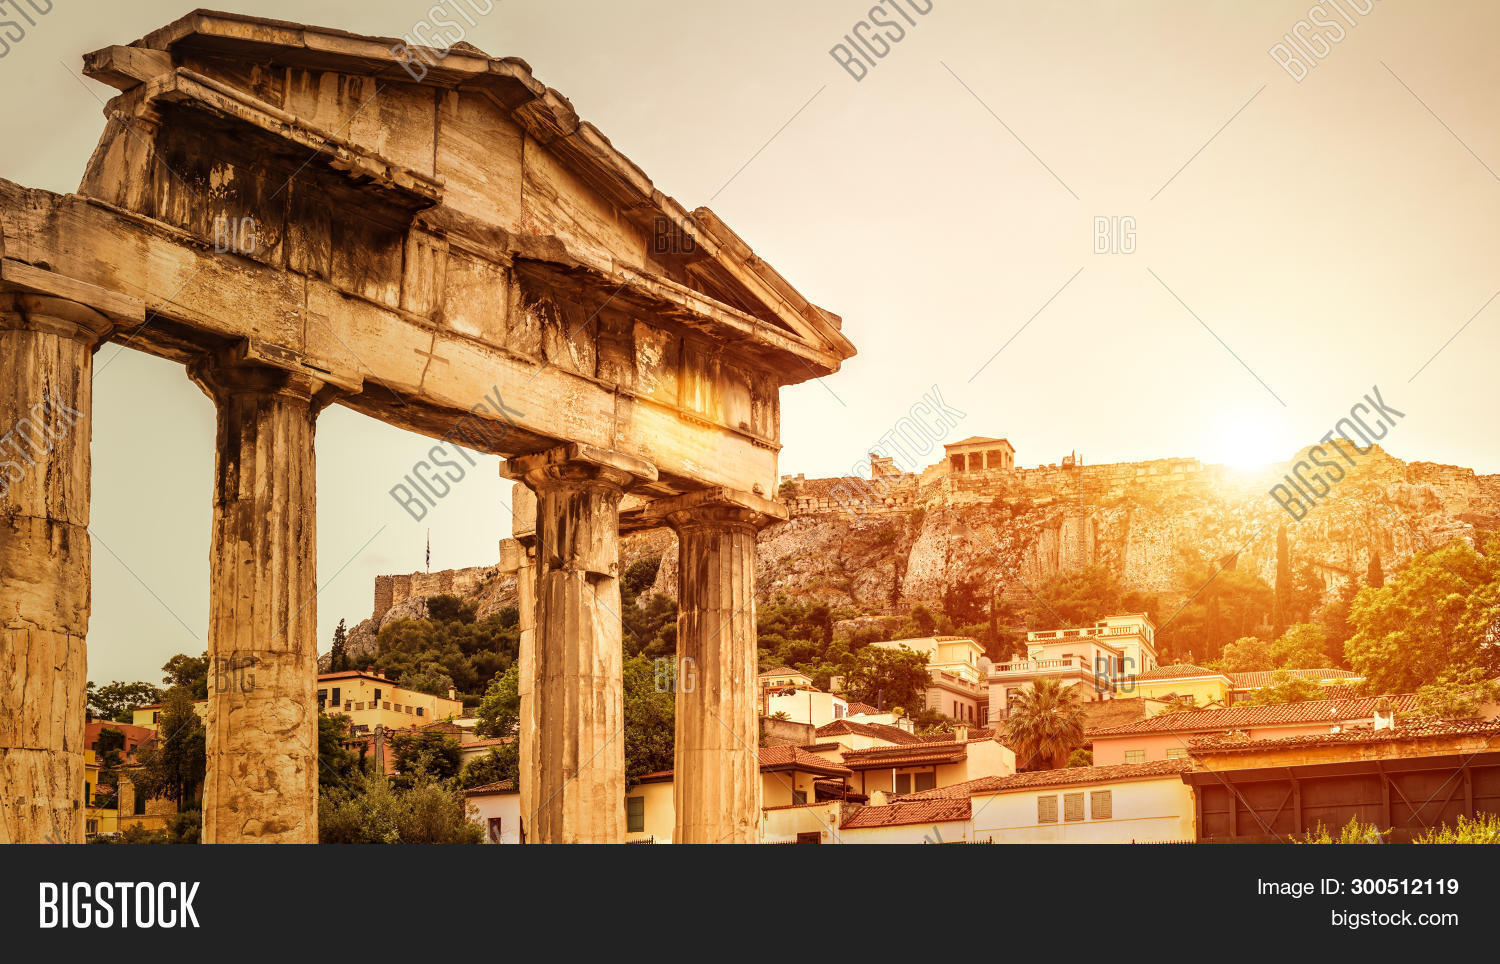 acropolis,agora,ancient,antique,arch,architecture,athens,attraction,background,building,city,cityscape,civilization,column,culture,destinations,europe,evening,famous,greece,greek,hellenistic,heritage,historical,landmark,landscape,monument,old,outdoor,panorama,pillar,place,plaka,roman,ruins,scenery,sightseeing,stone,sun,sunlight,sunny,sunset,temple,tourism,tourist,travel,unesco,vacation,view,world